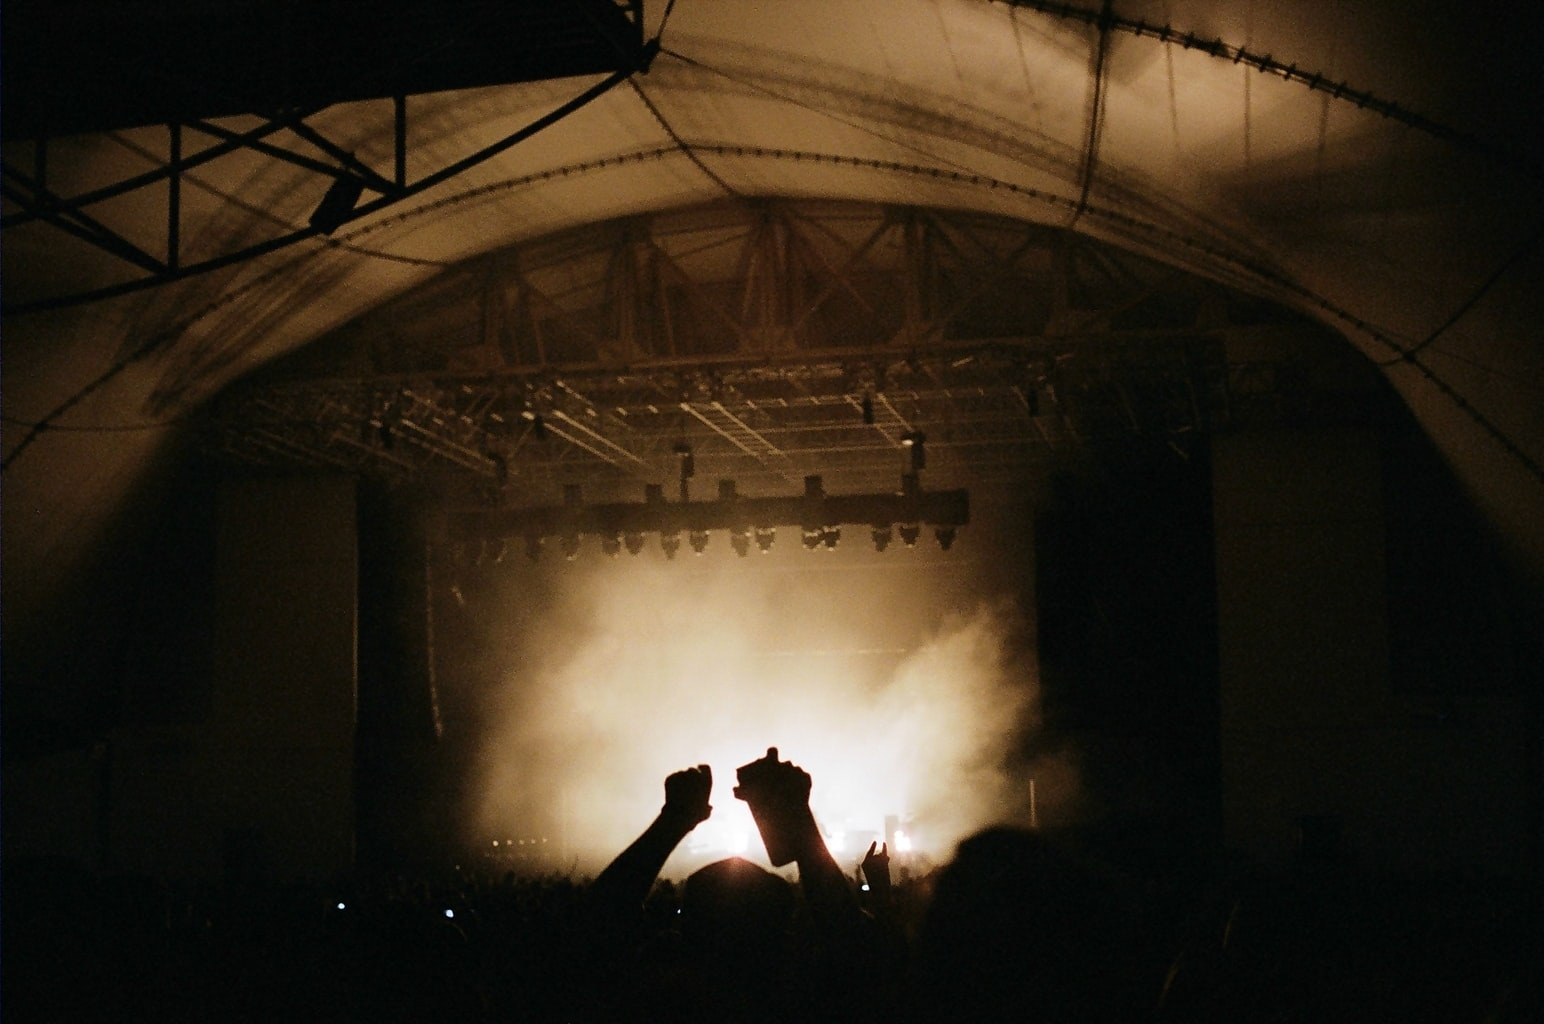 silhouette photography of group of people on concert